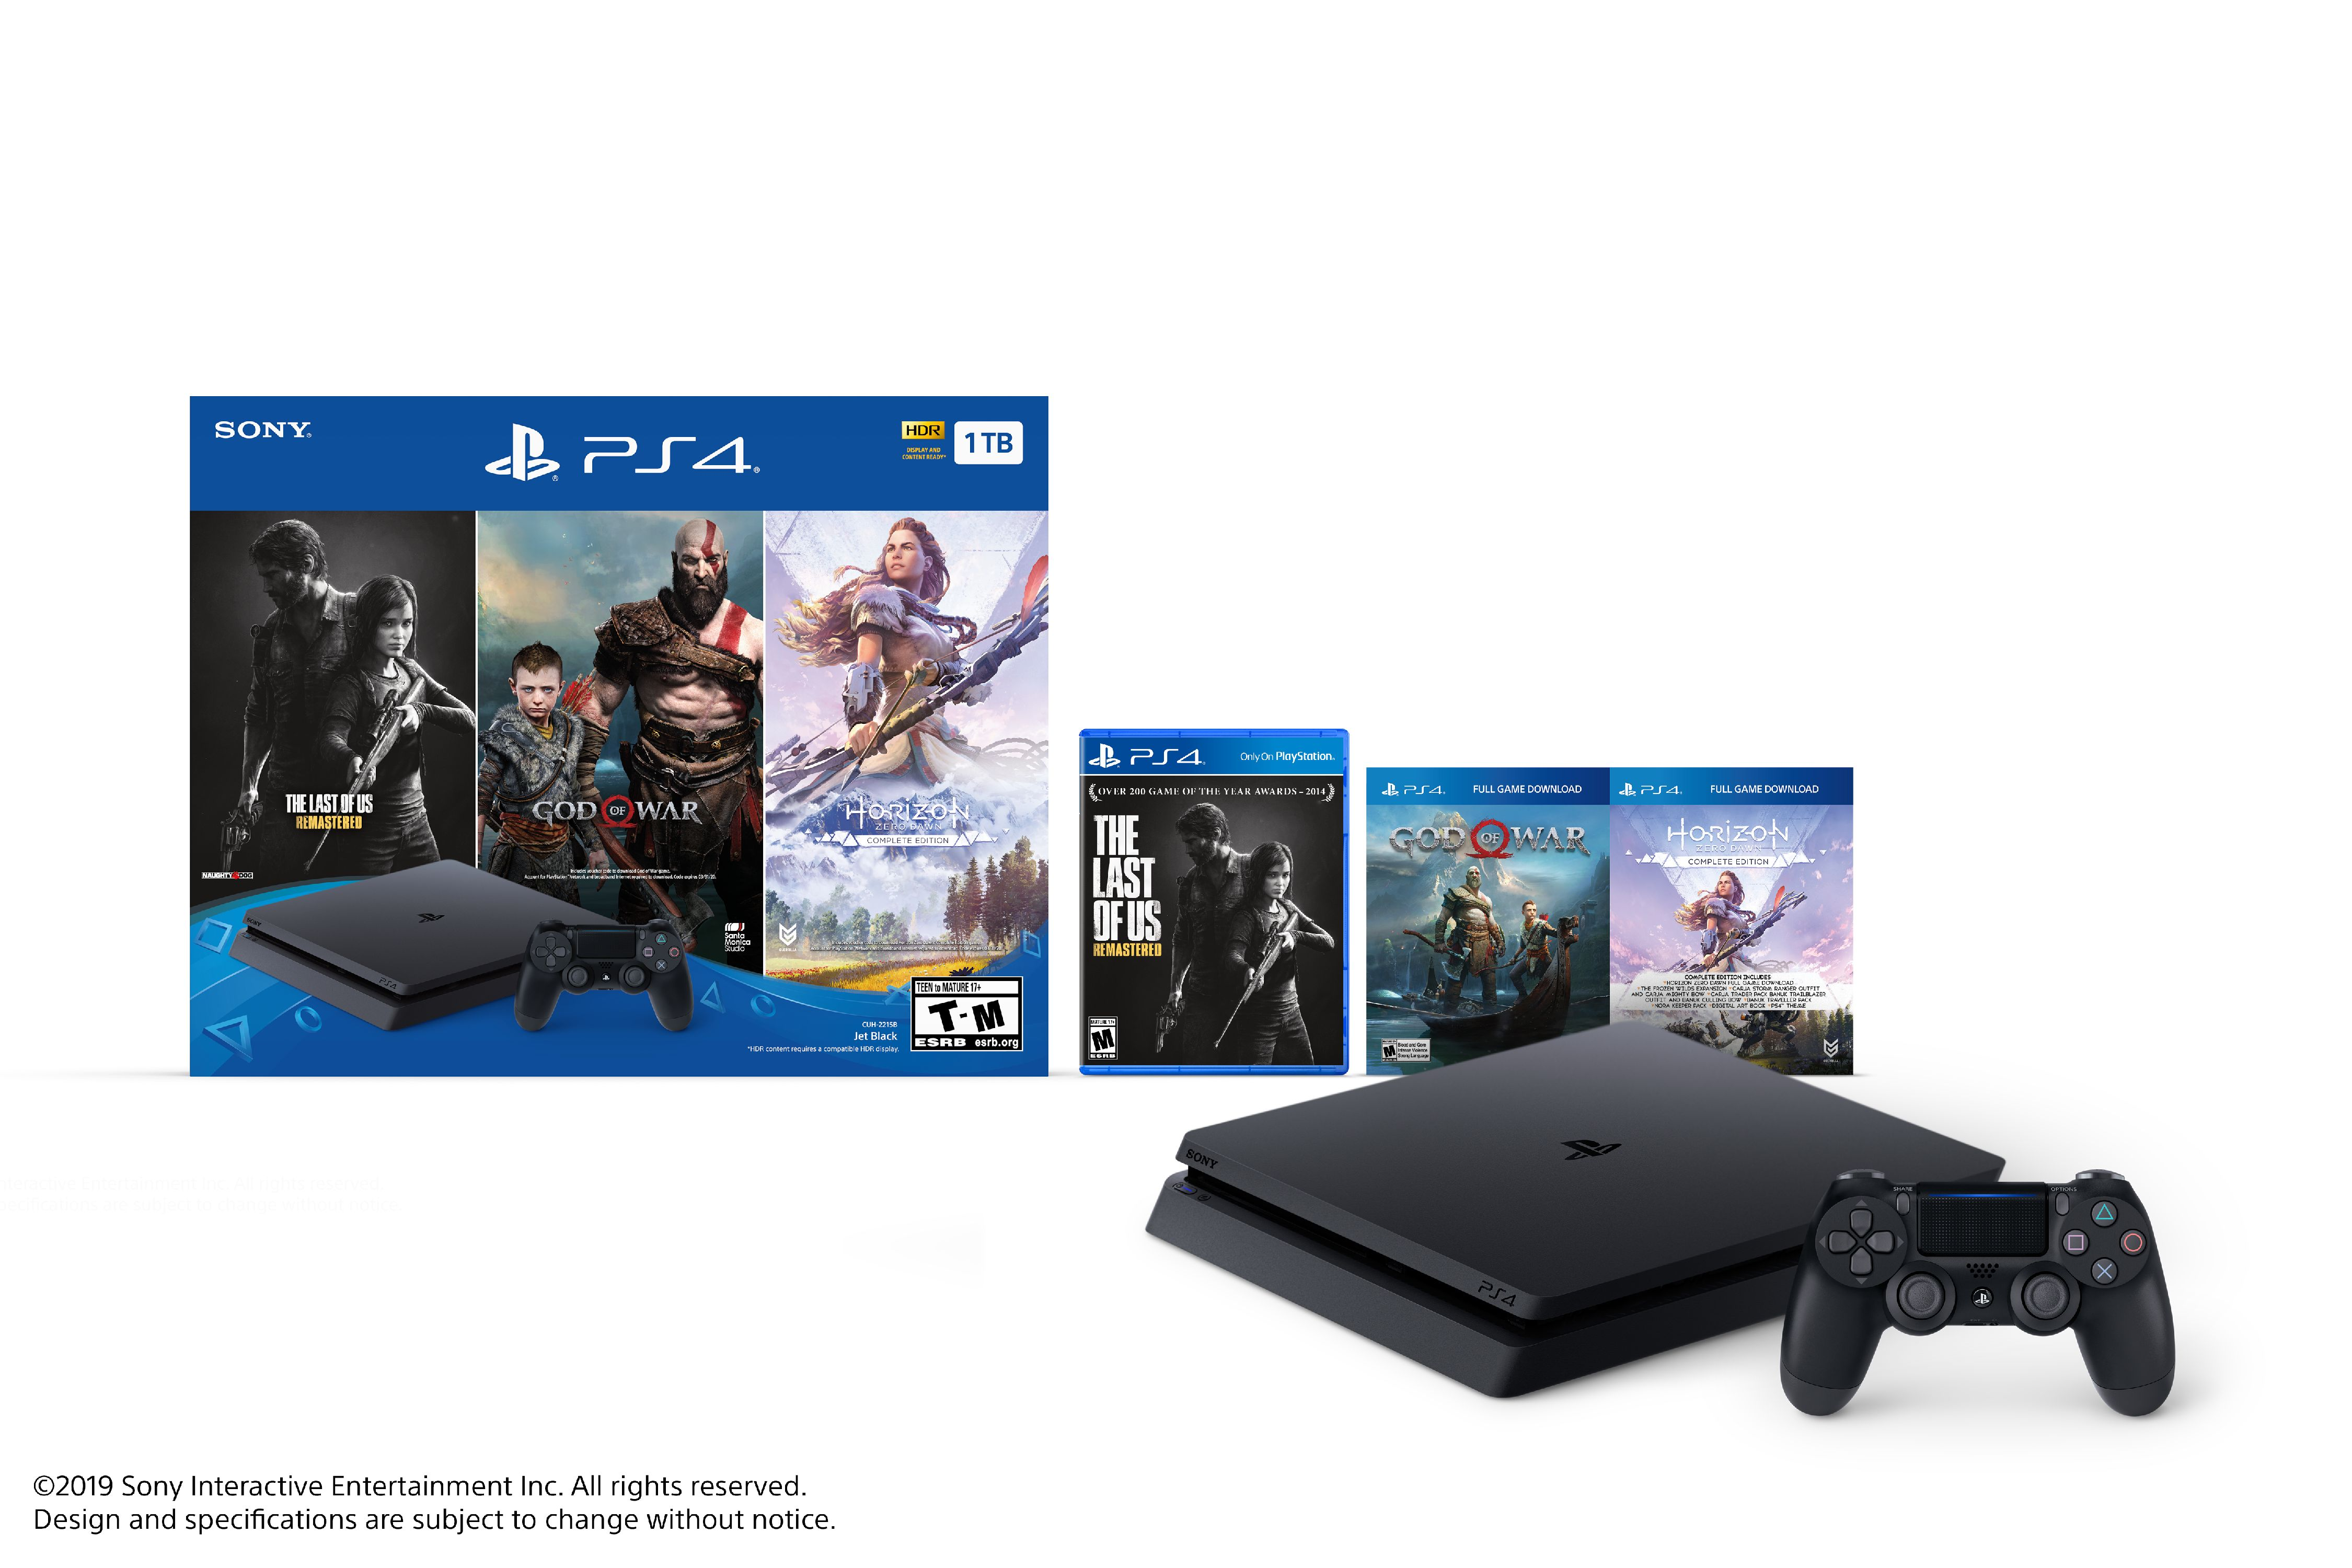 Download Roblox On A Ps4 Sony Playstation Slim 4 1tb Only On Playstation Ps4 Console Bundle Black Walmart Com Walmart Com